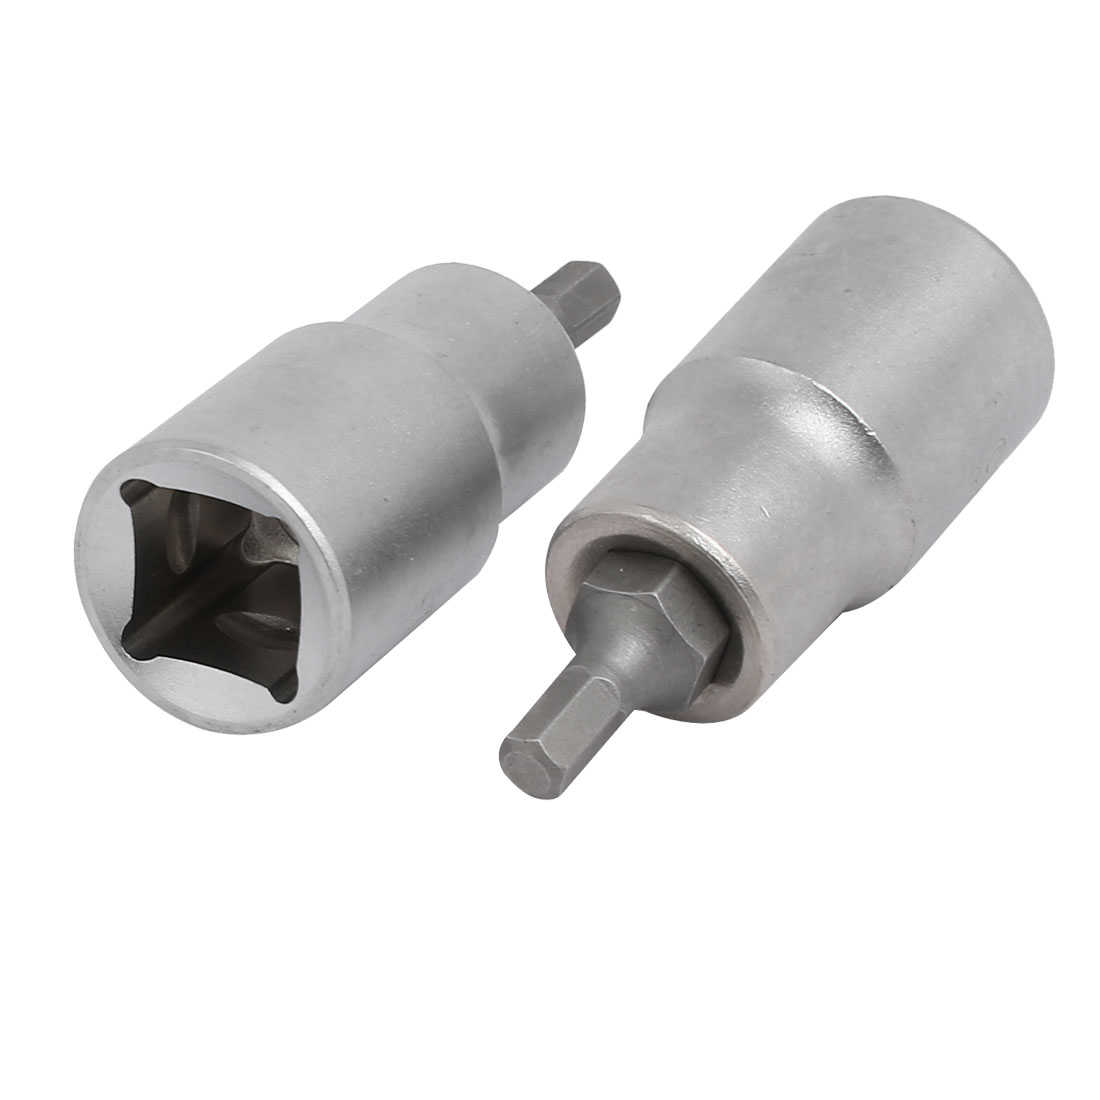 H5 Hex Head 1/2-inch Square Chrome Vanadium Steel Drive Socket Adapter 2pcs